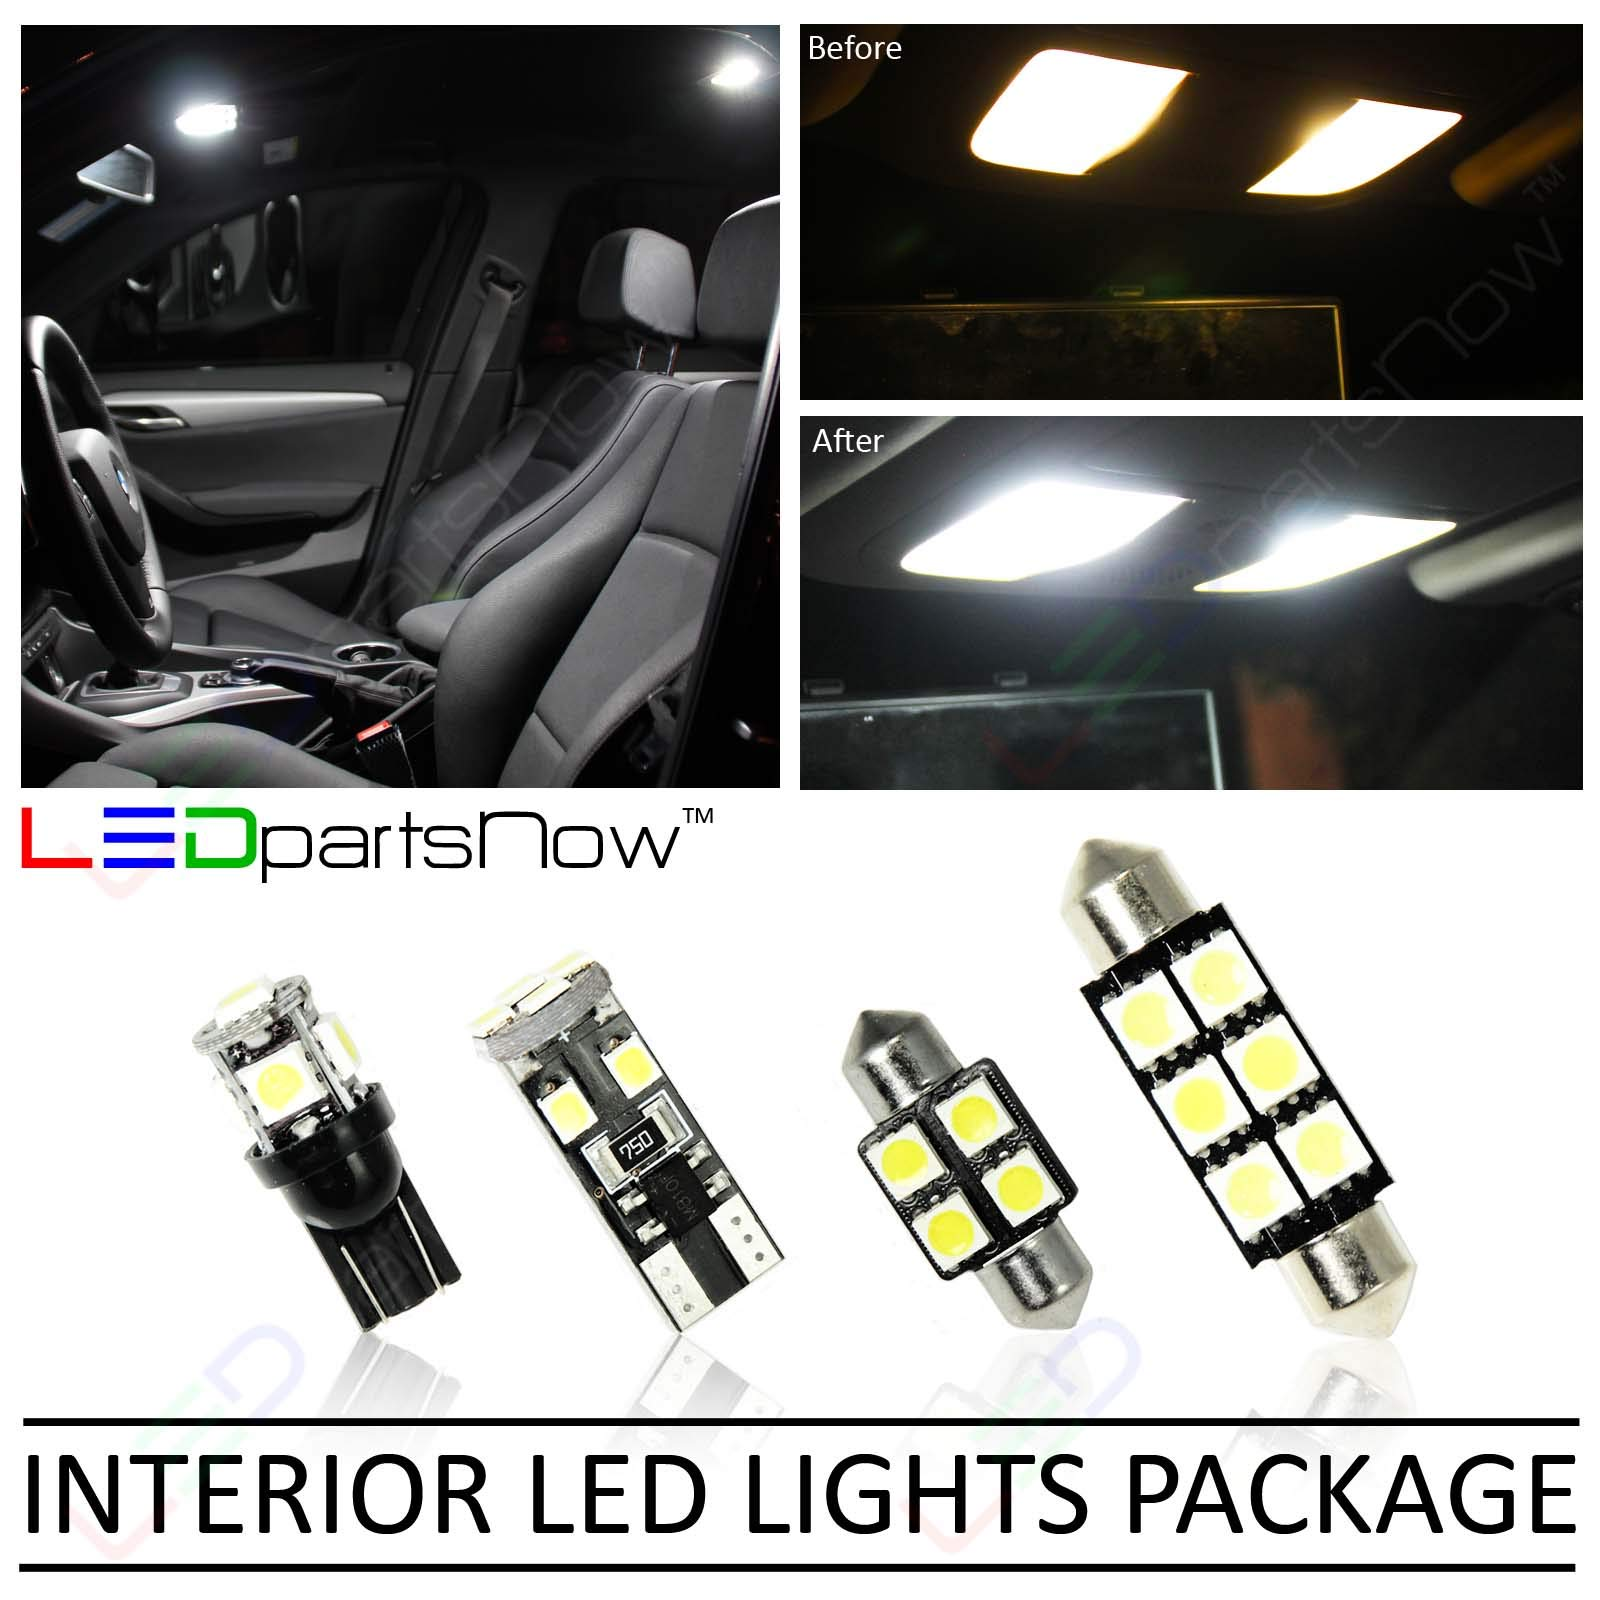 Ledpartsnow 2011 2014 Kia Sorento Led Interior Lights Accessories Package Replacement Kit 11 Bulbs White